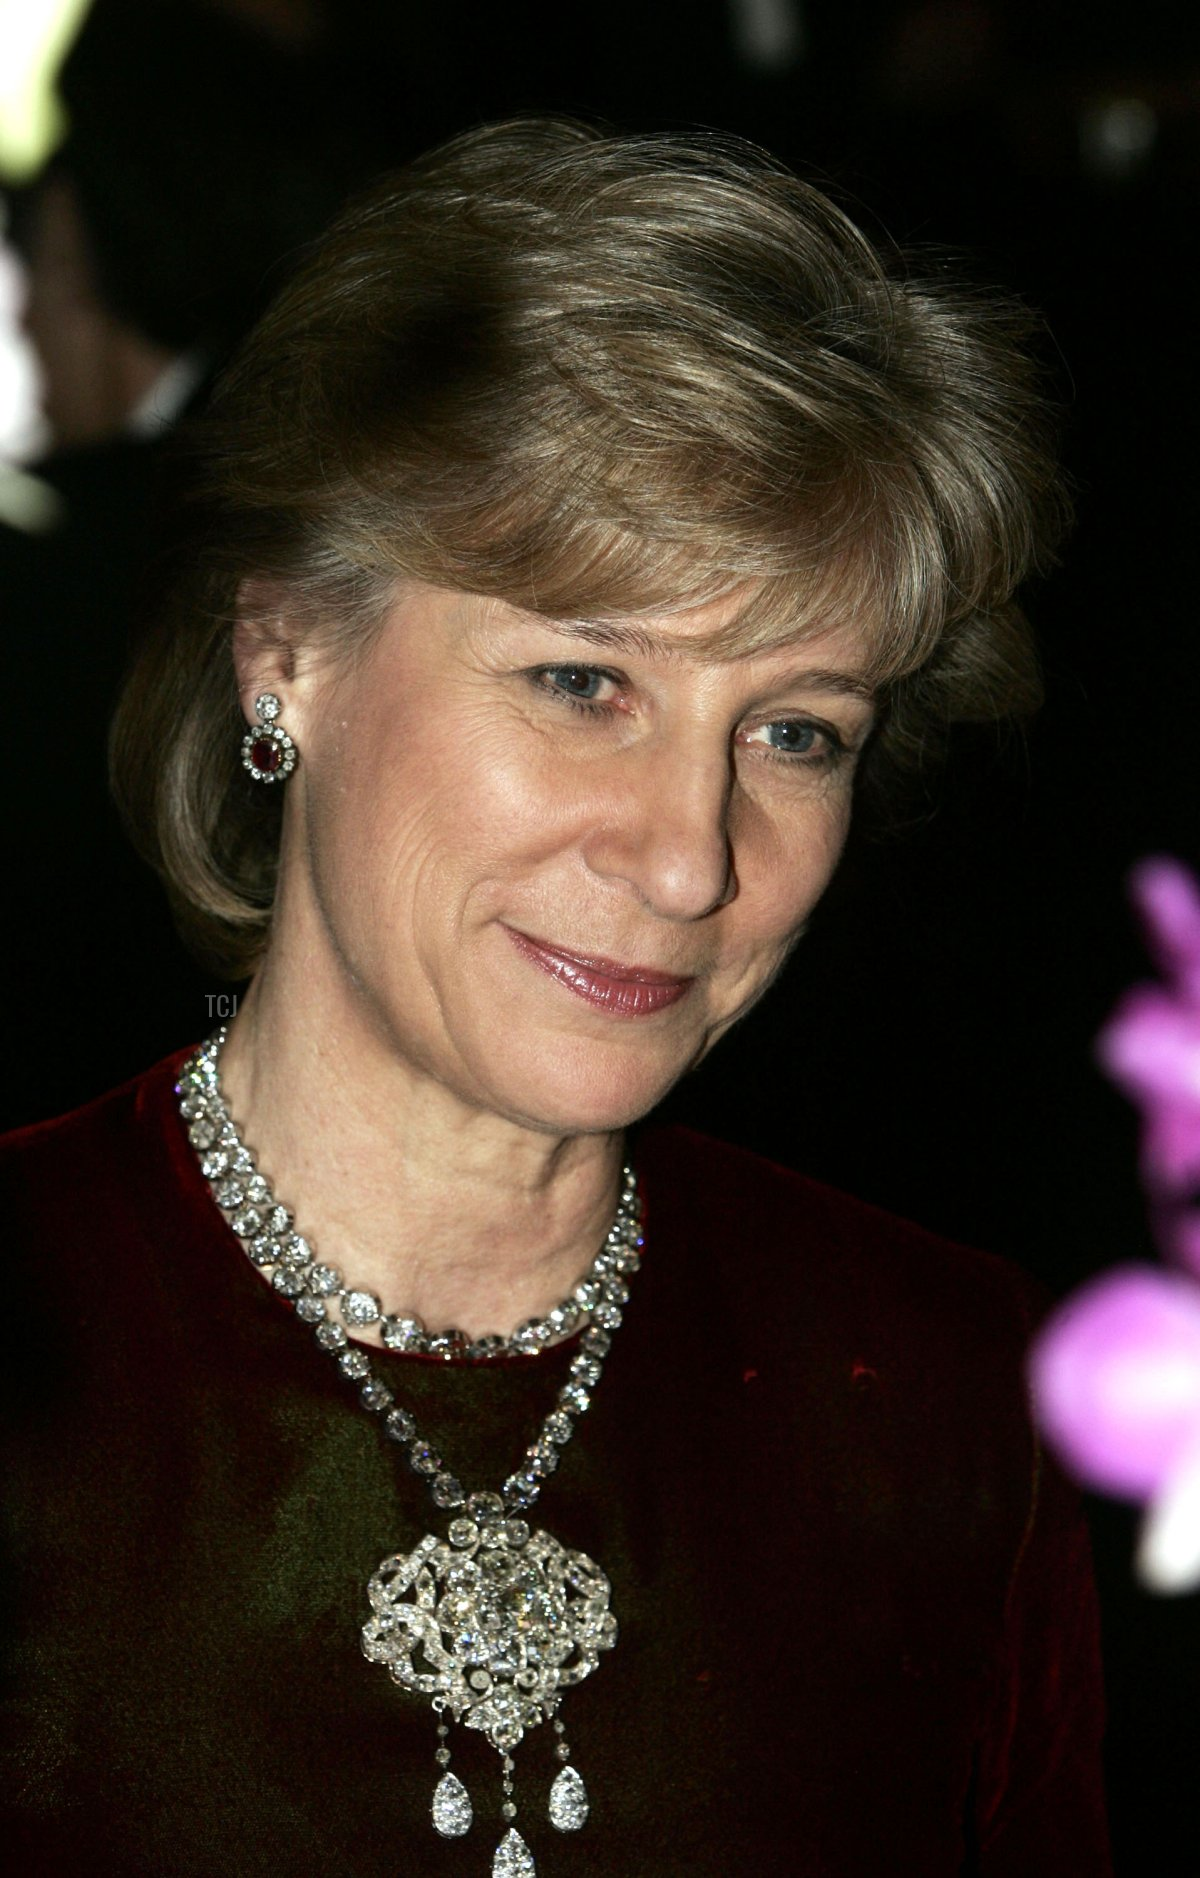 The Duchess of Gloucester attends the Child Abuse Foundation Gala at the Castle of Versailles on December 6, 2004 in Versailles, France